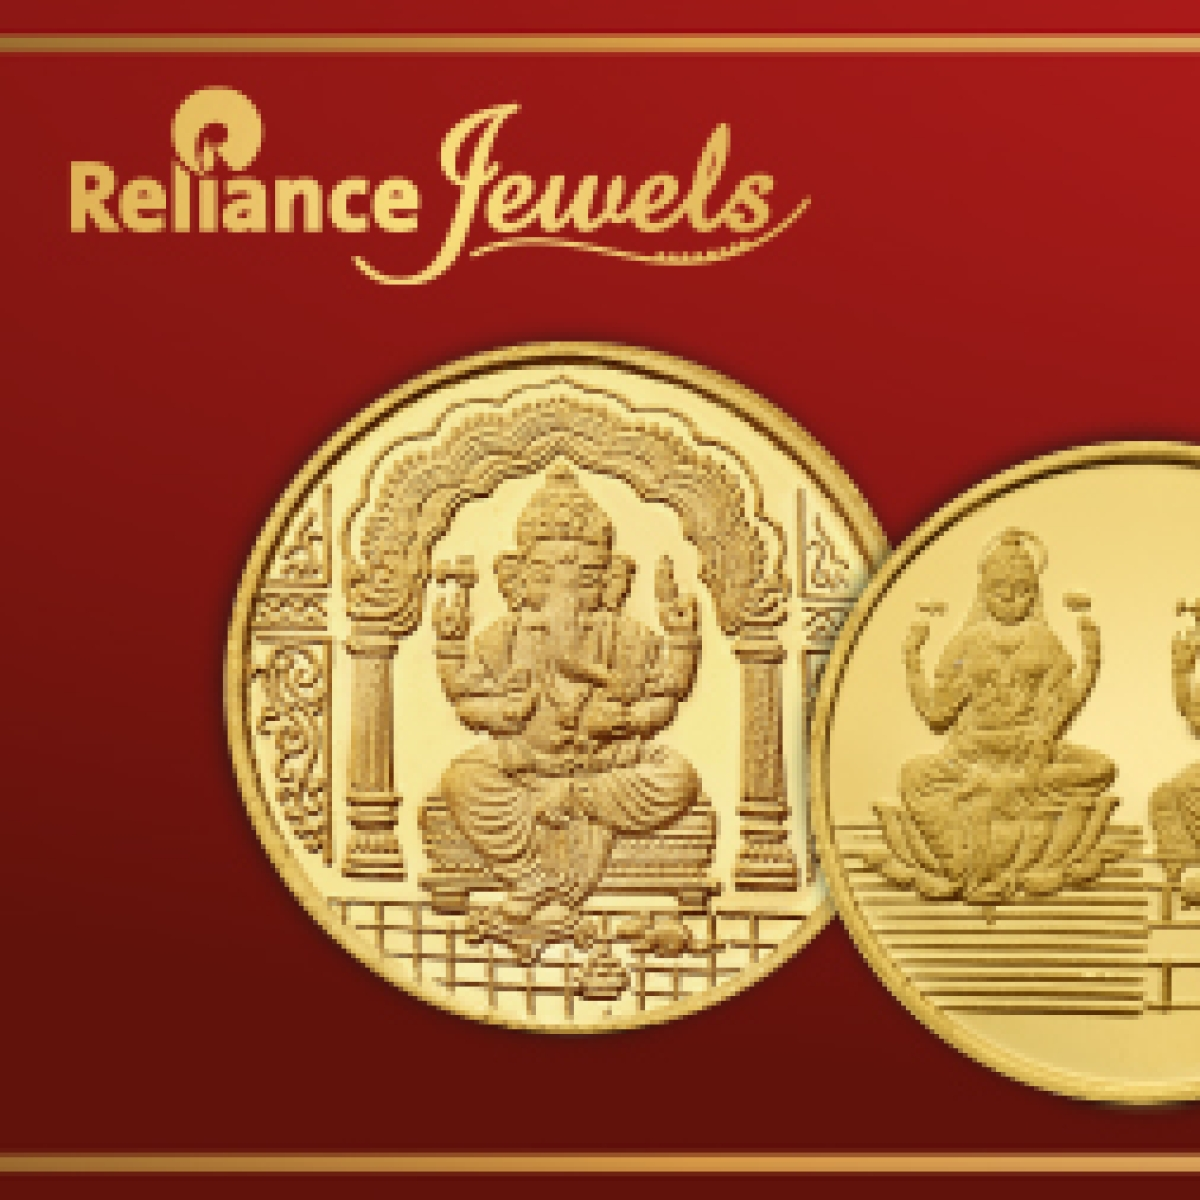 Reliance Jewels brings the Akshaya Tritiya tradition to your homes with www.reliancejewels.com